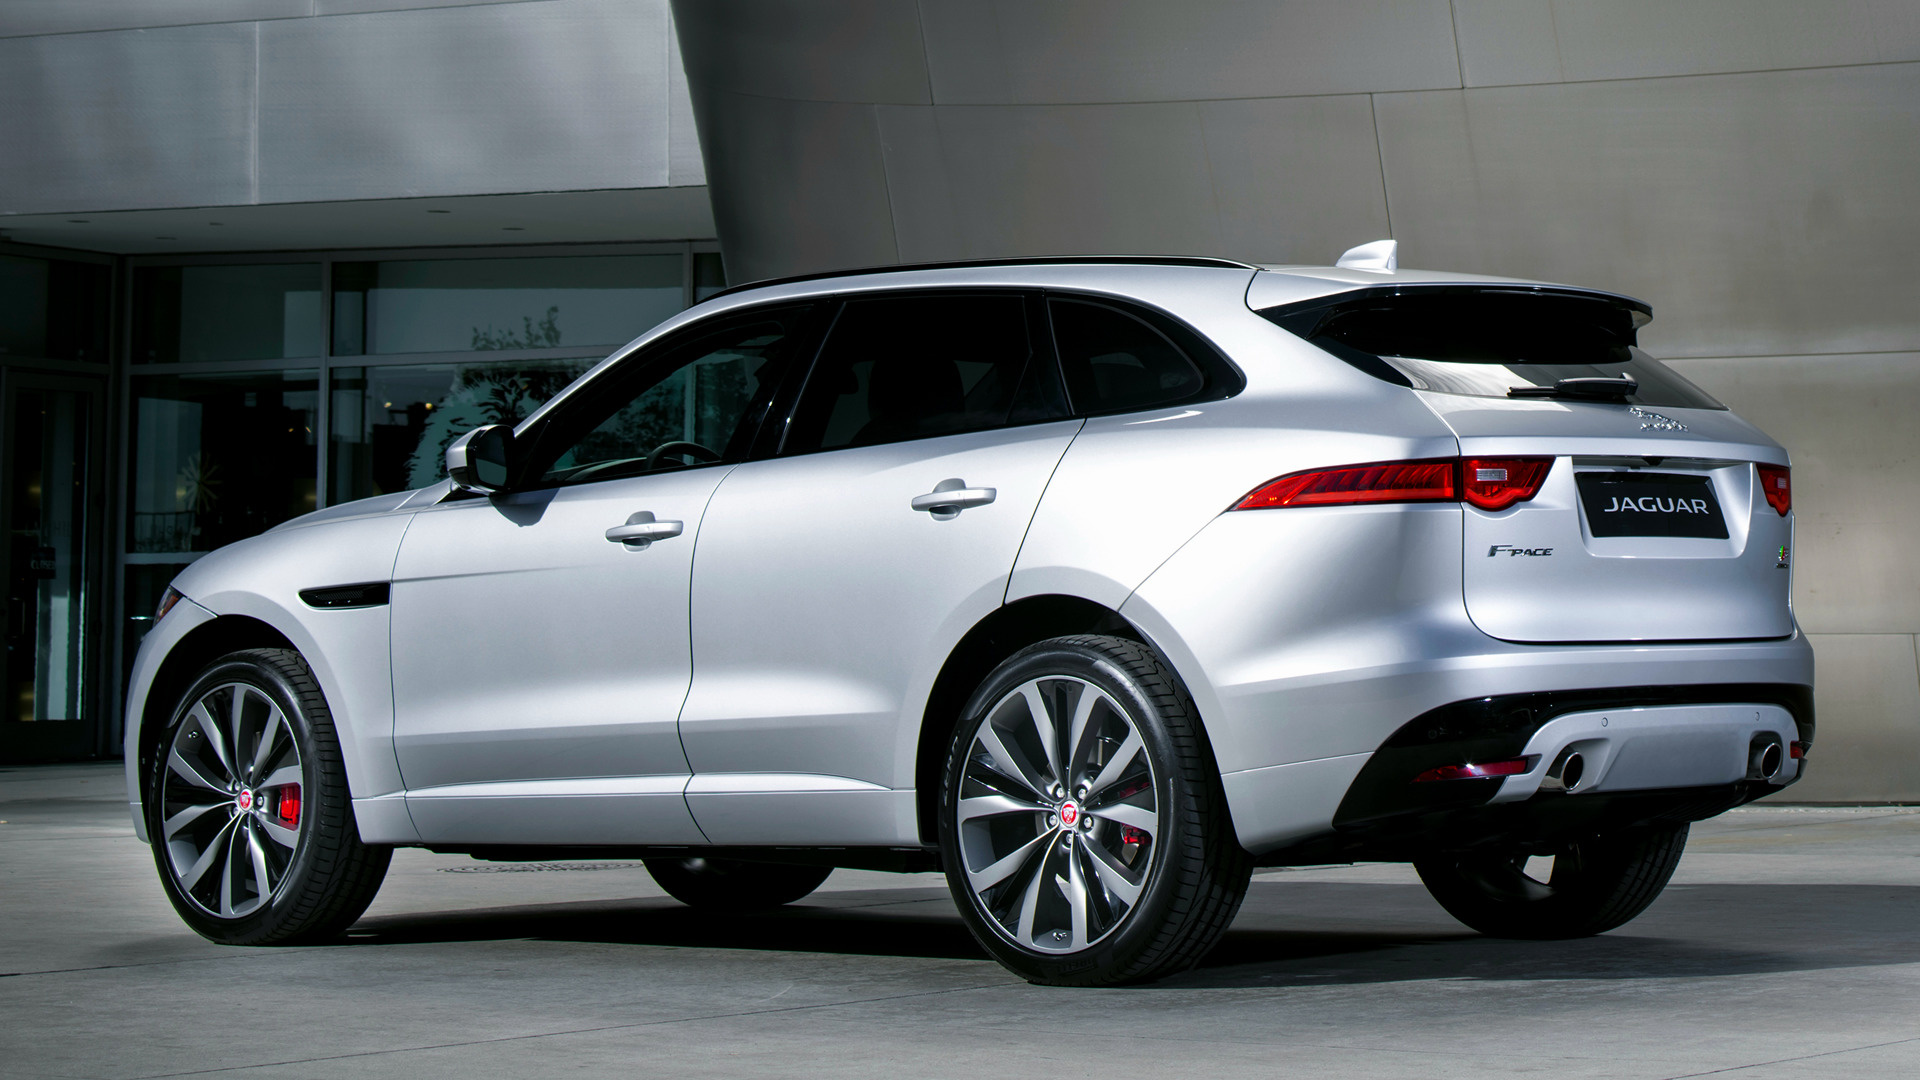 Jaguar F-Pace S (2017) US Wallpapers and HD Images - Car Pixel